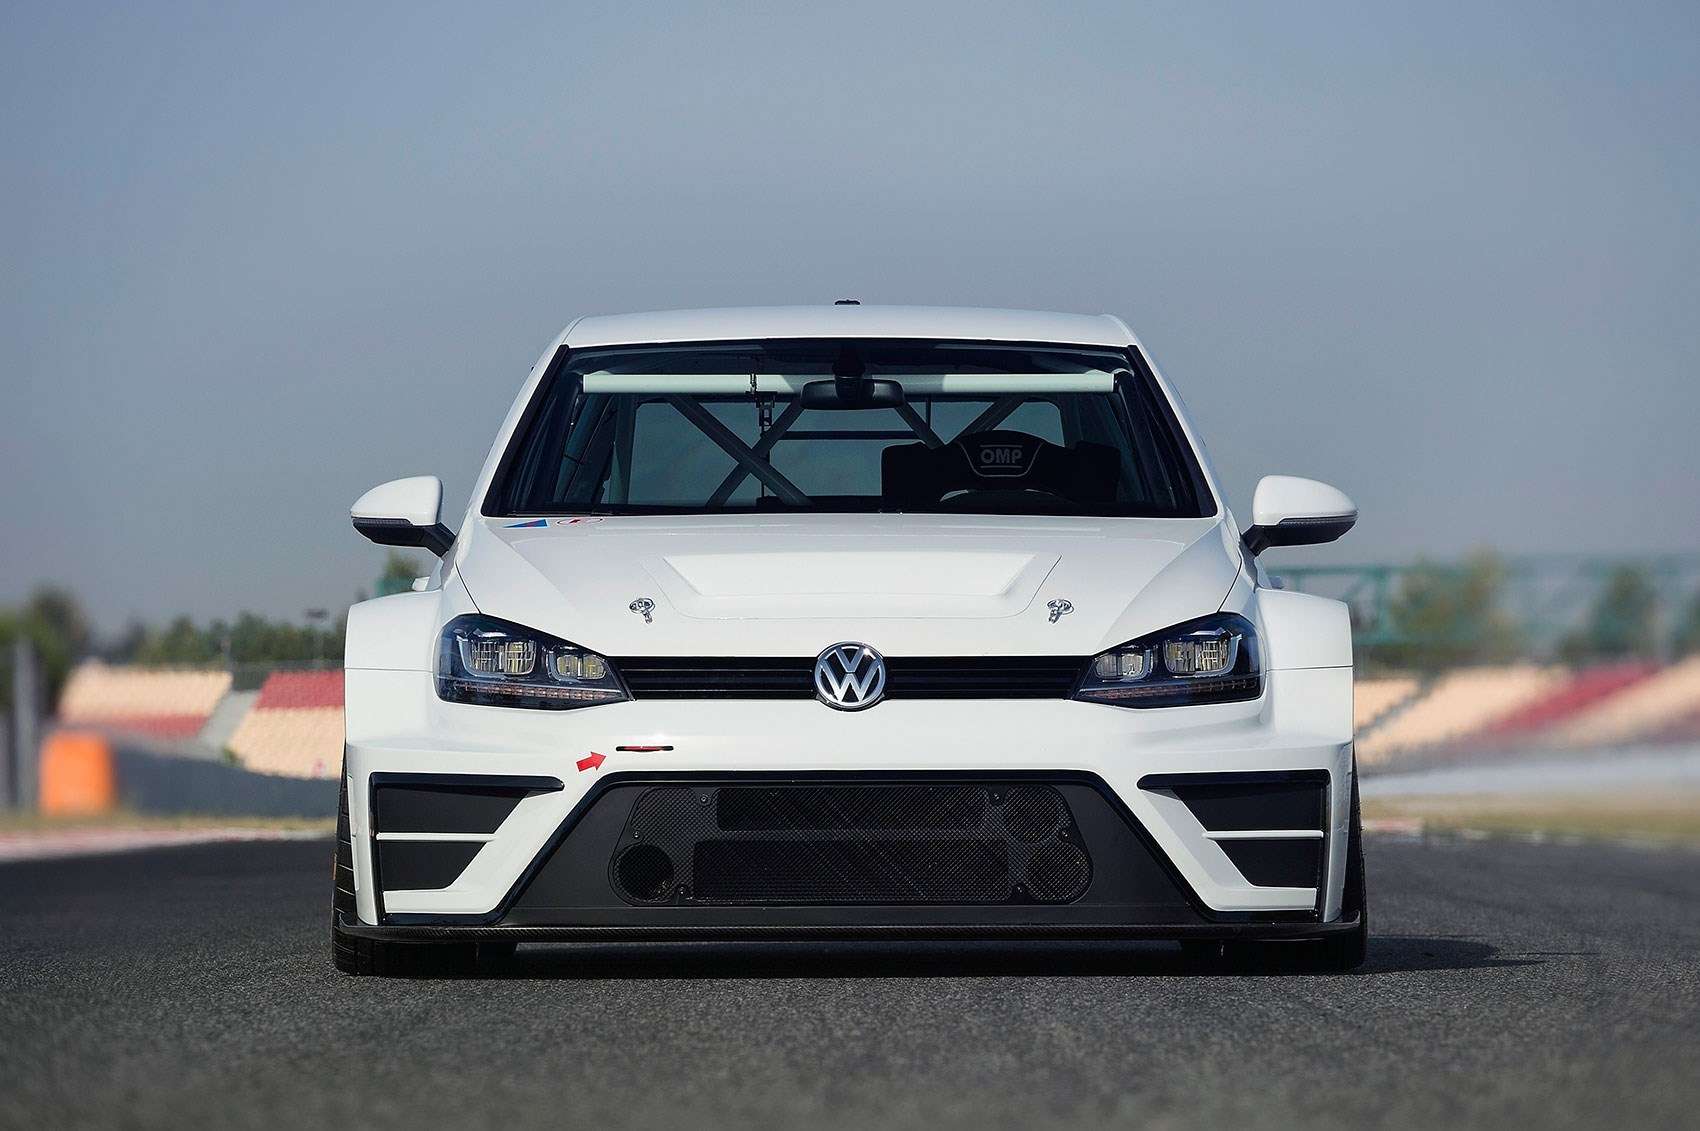 Vw Golf Touring Car Announced For International Series